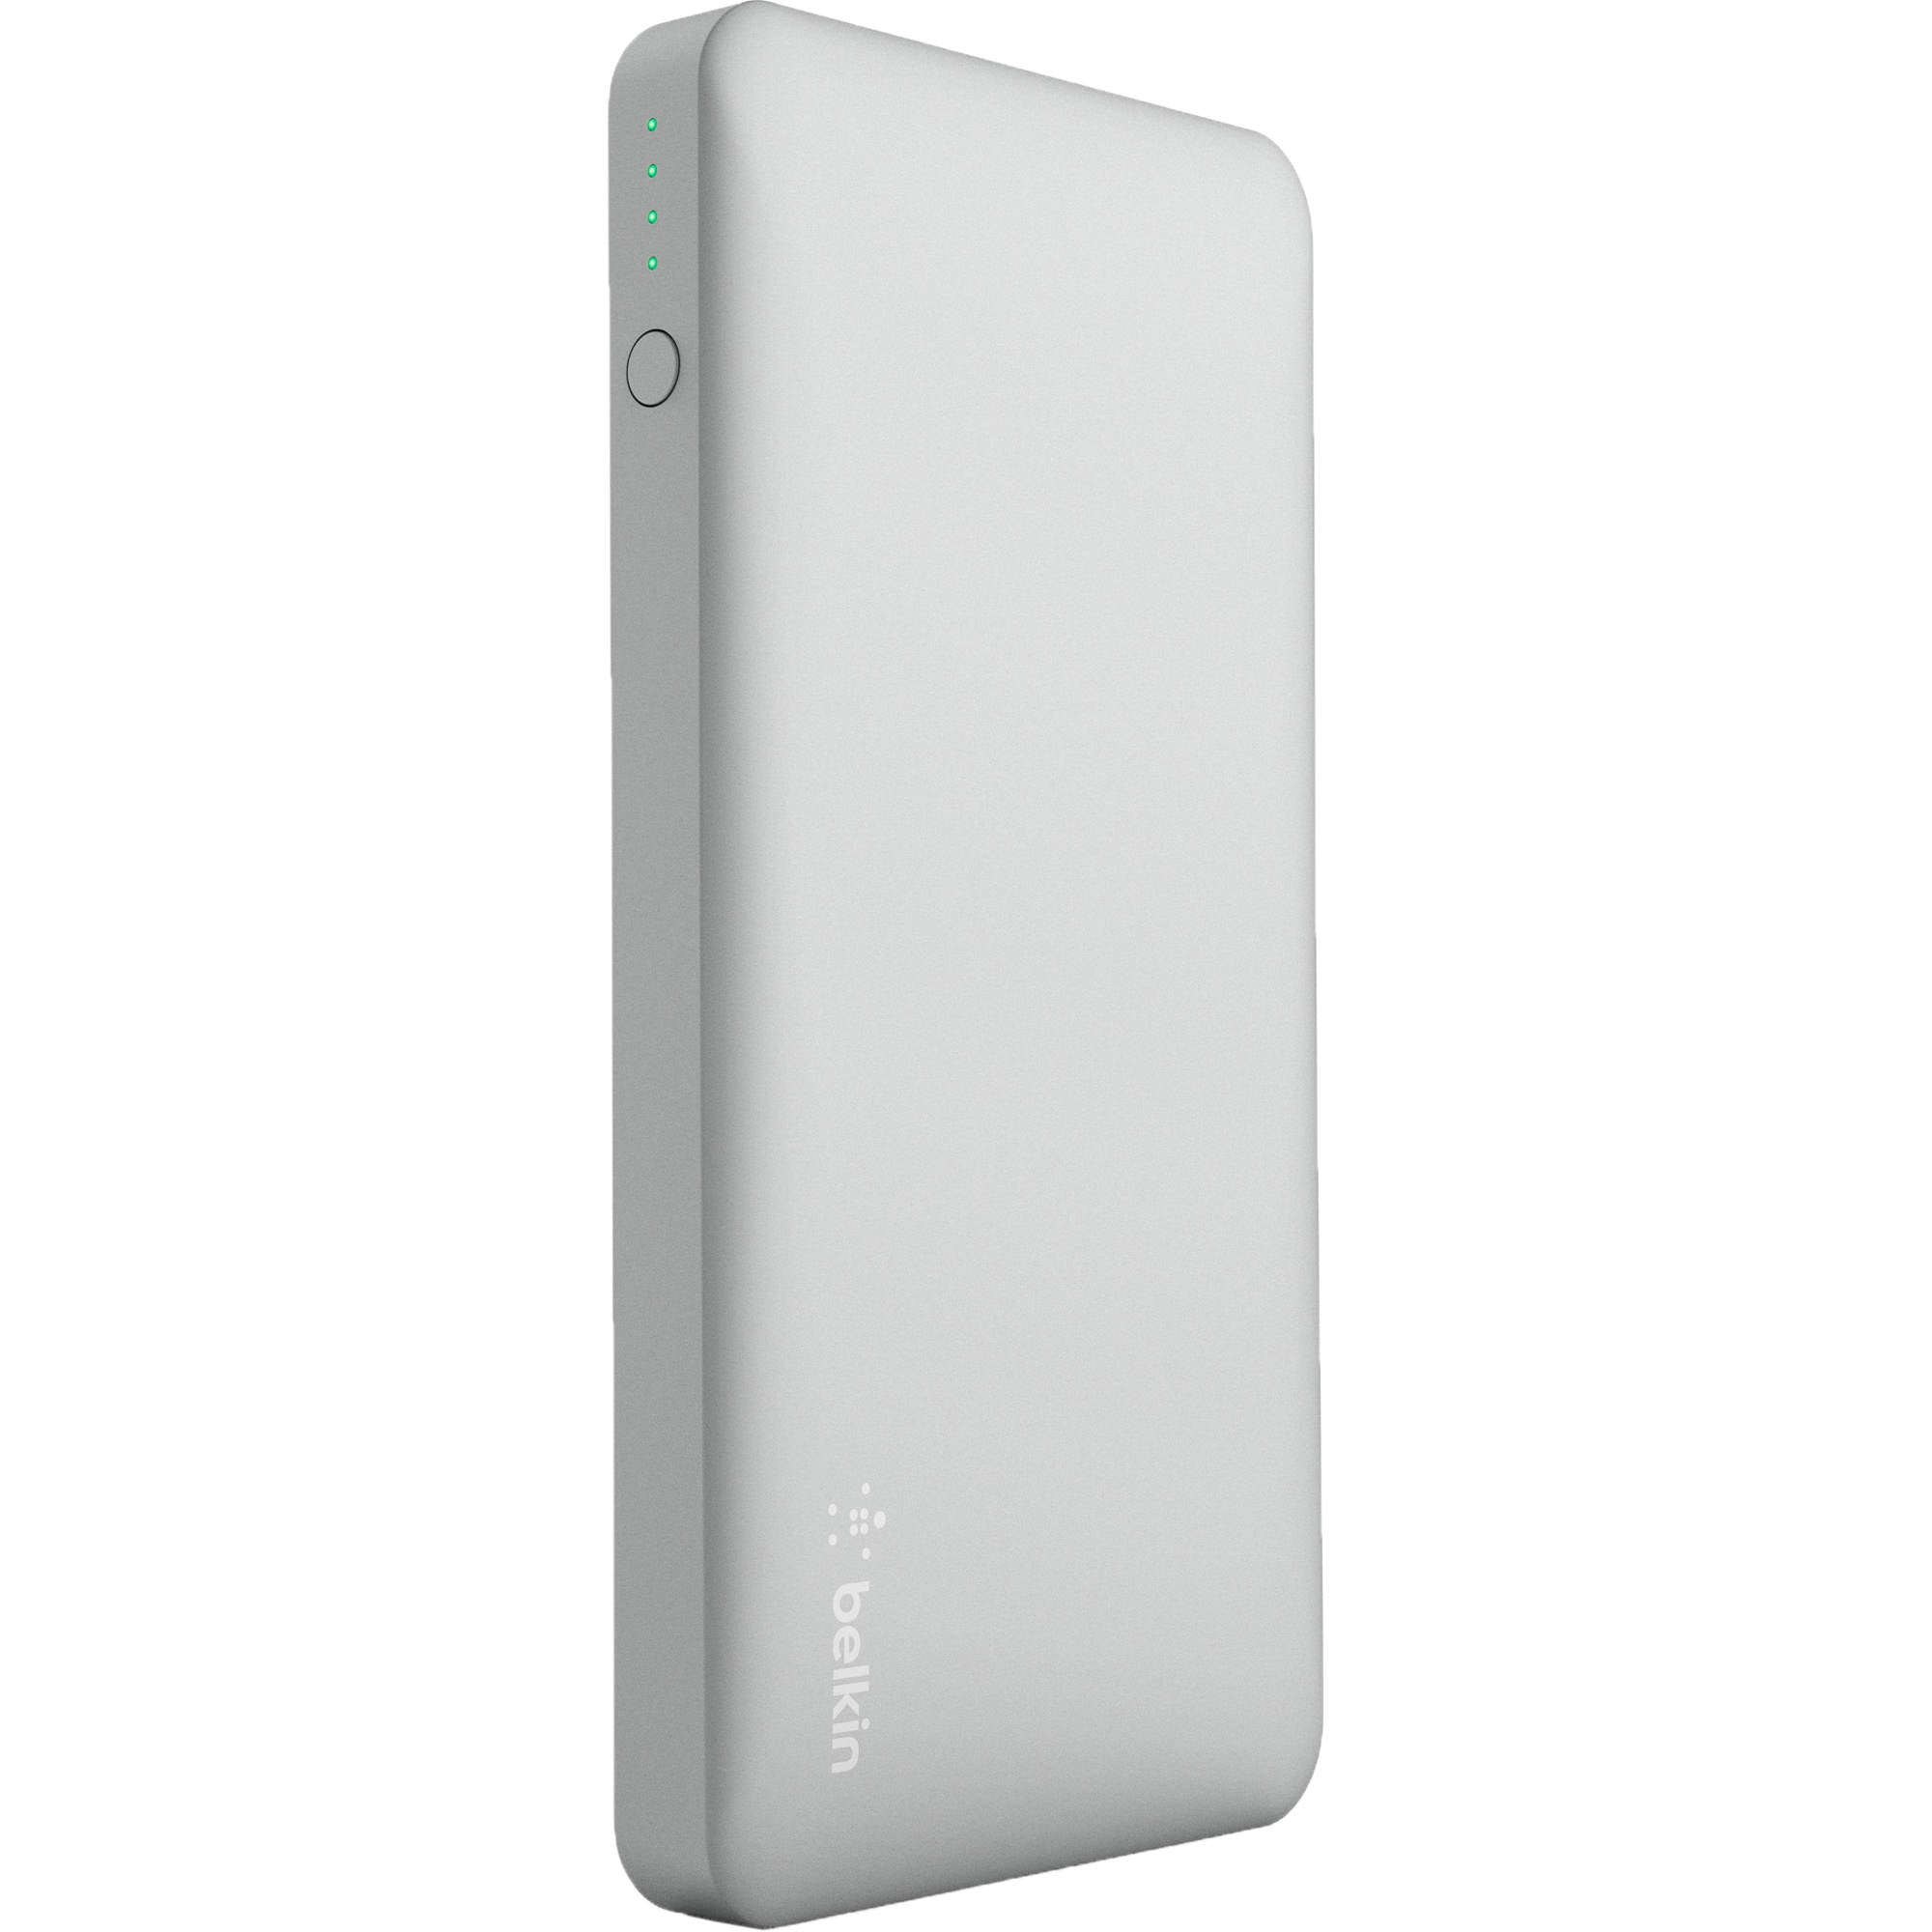 Belkin Pocket Power Bank 5000 mAh Fast, Portable Charger (Certified Safety)